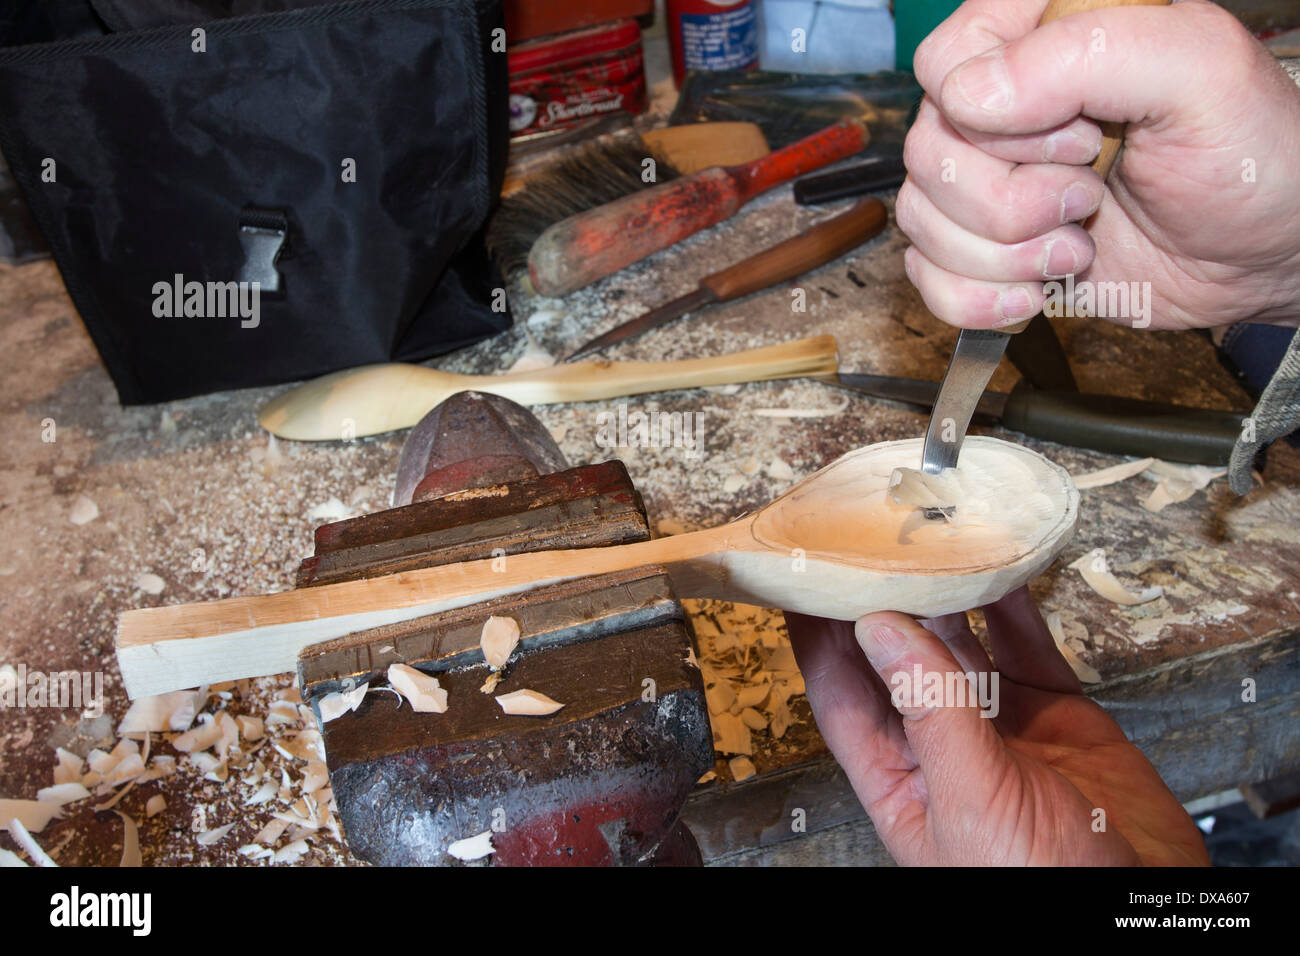 Spoon Carver Using a Crook Knife to Carve out the Bowl - Stock Image